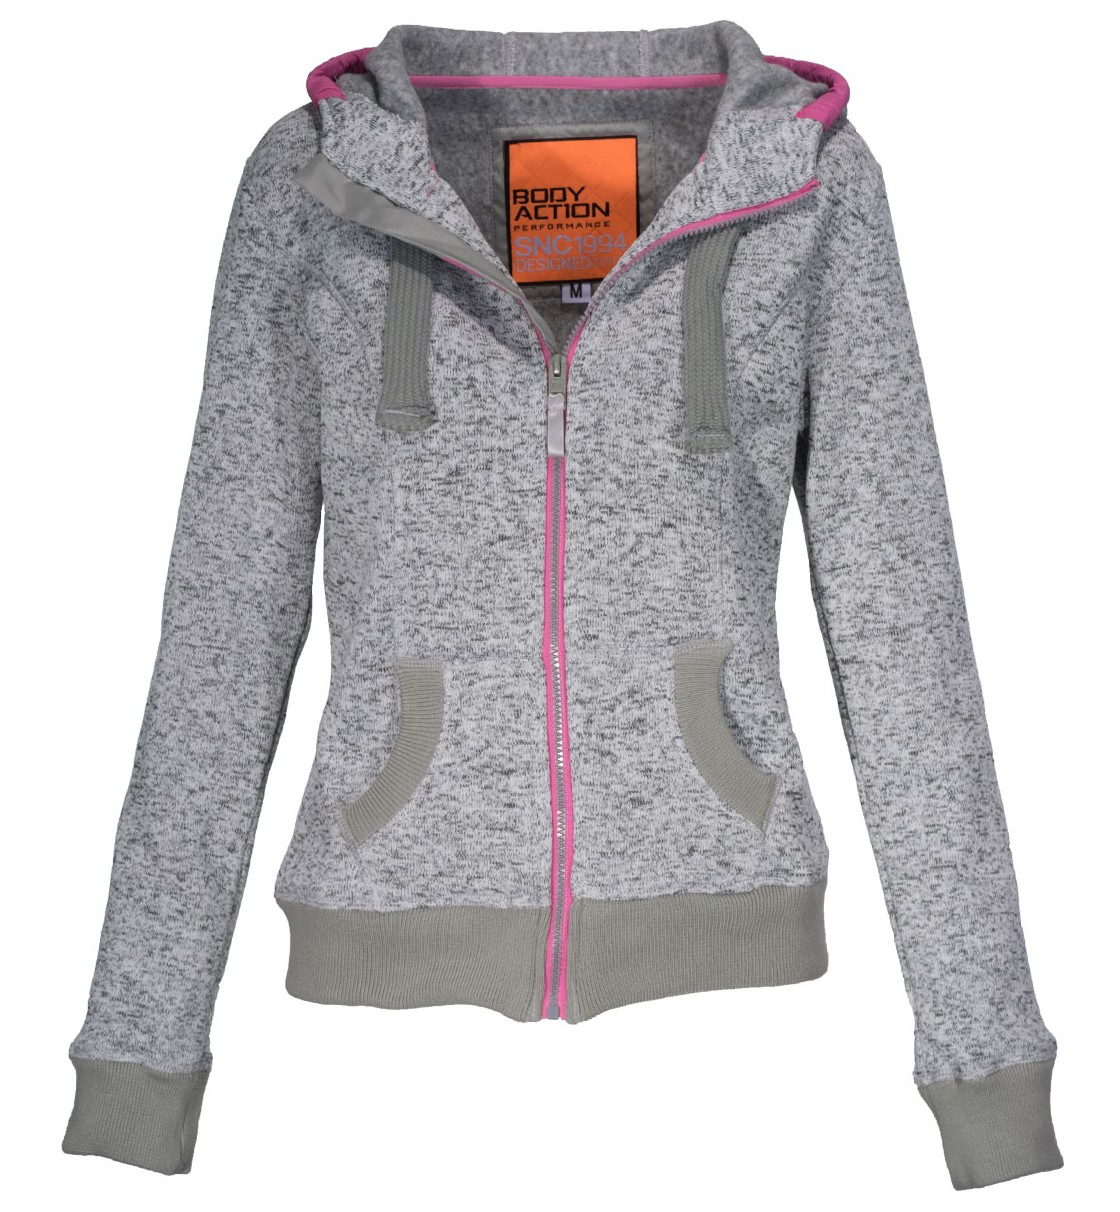 Body Action Women Thick Fleece Zip Hoodie